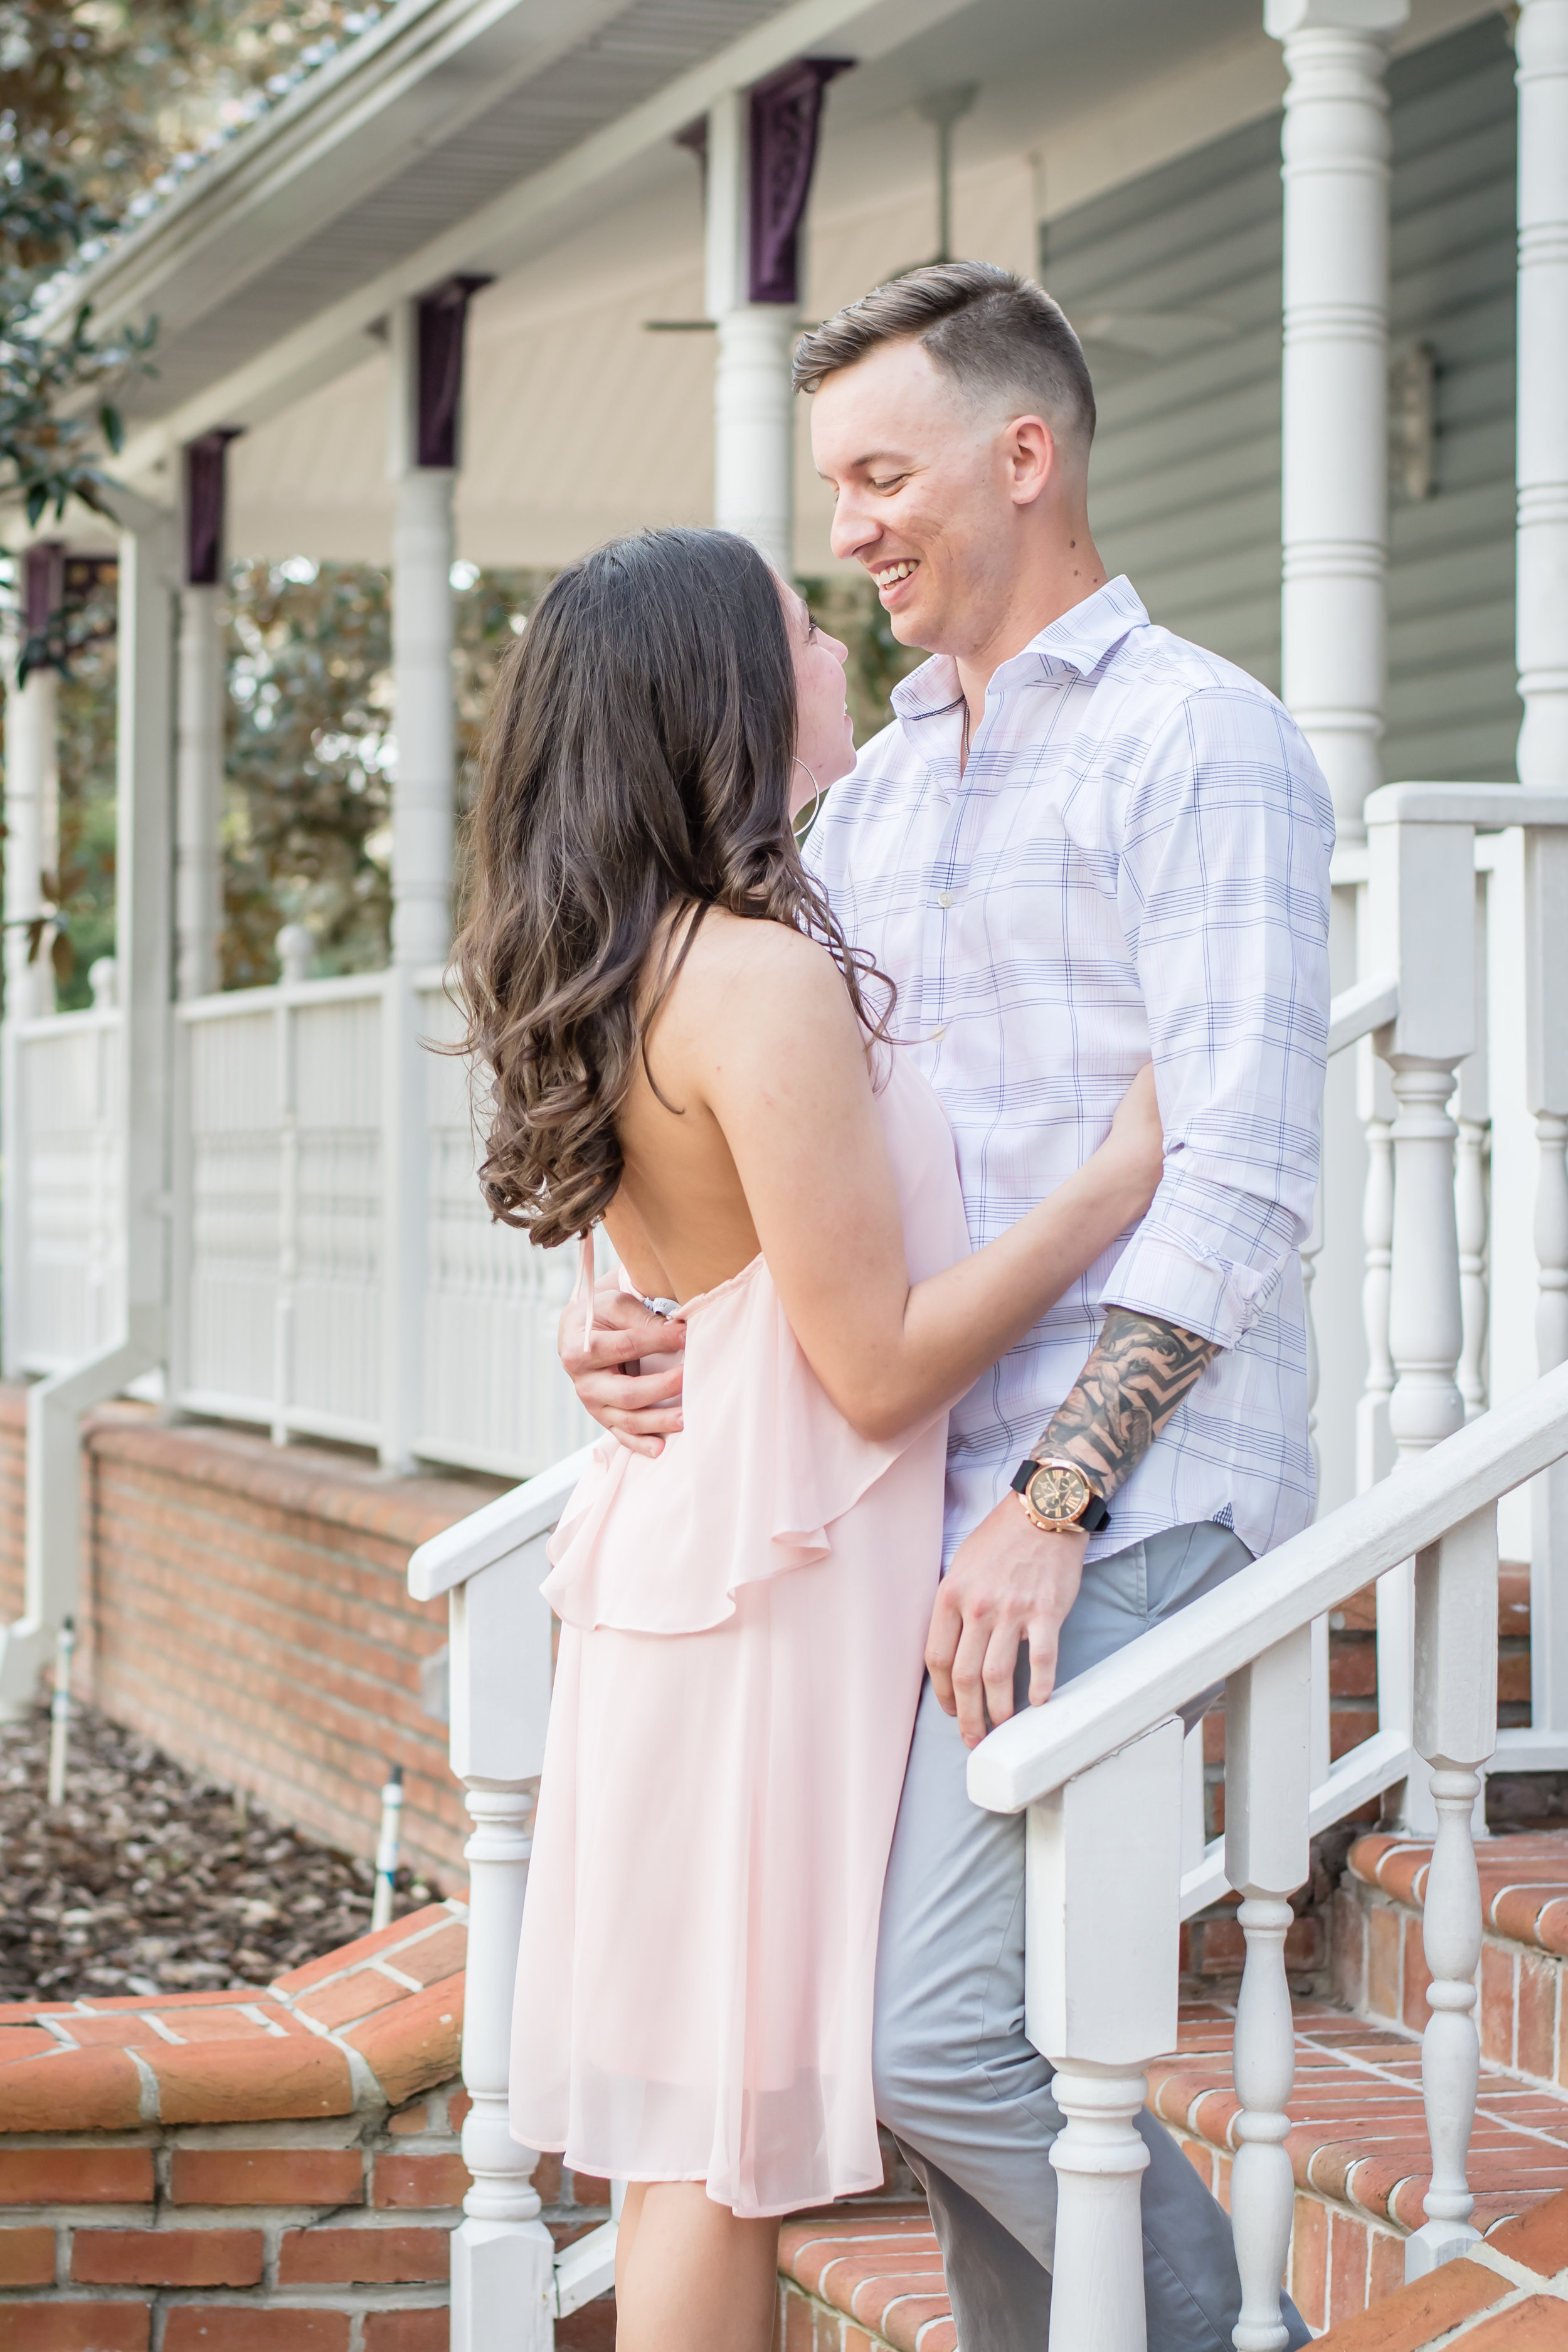 longwood-engagement-session-orlando-photographer-yanitza-ninett-21.jpg